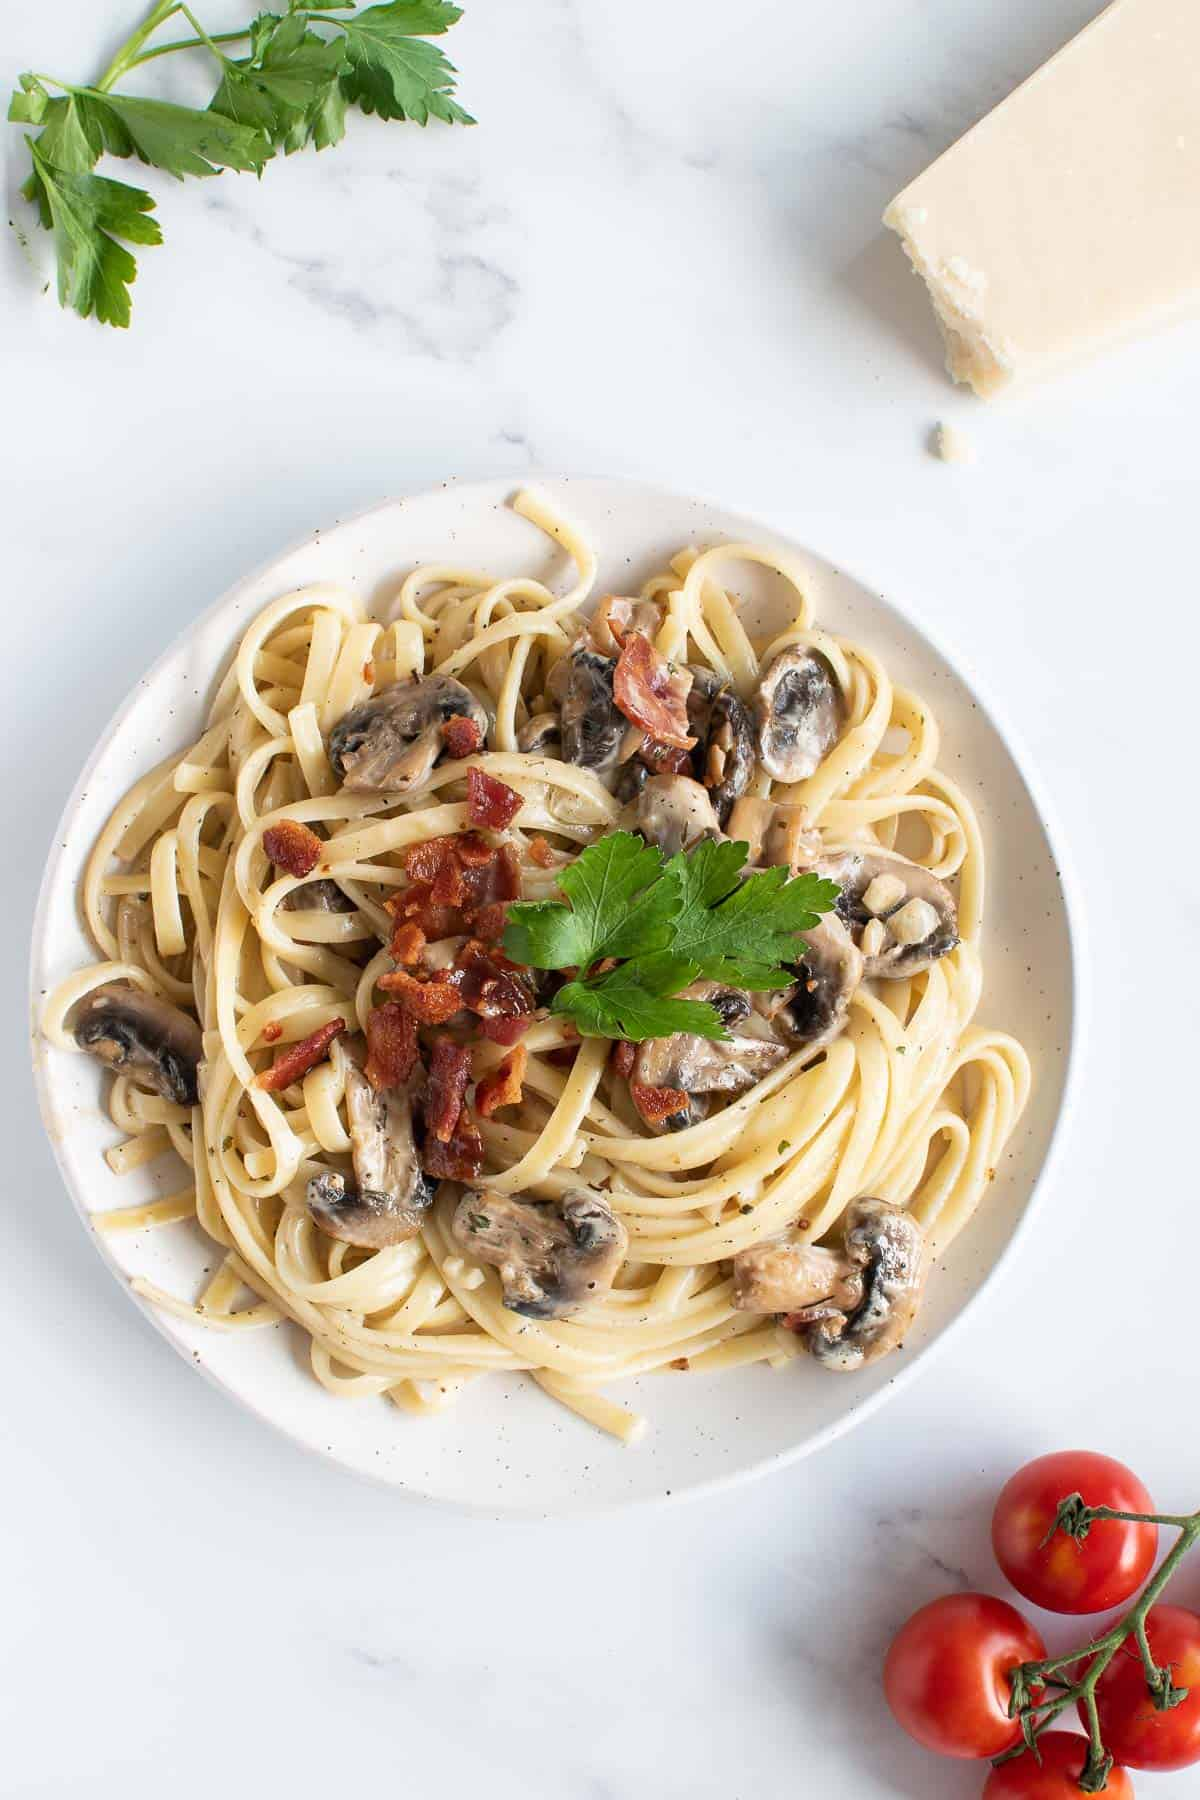 Bacon and mushroom linguine with parmesan on the side.